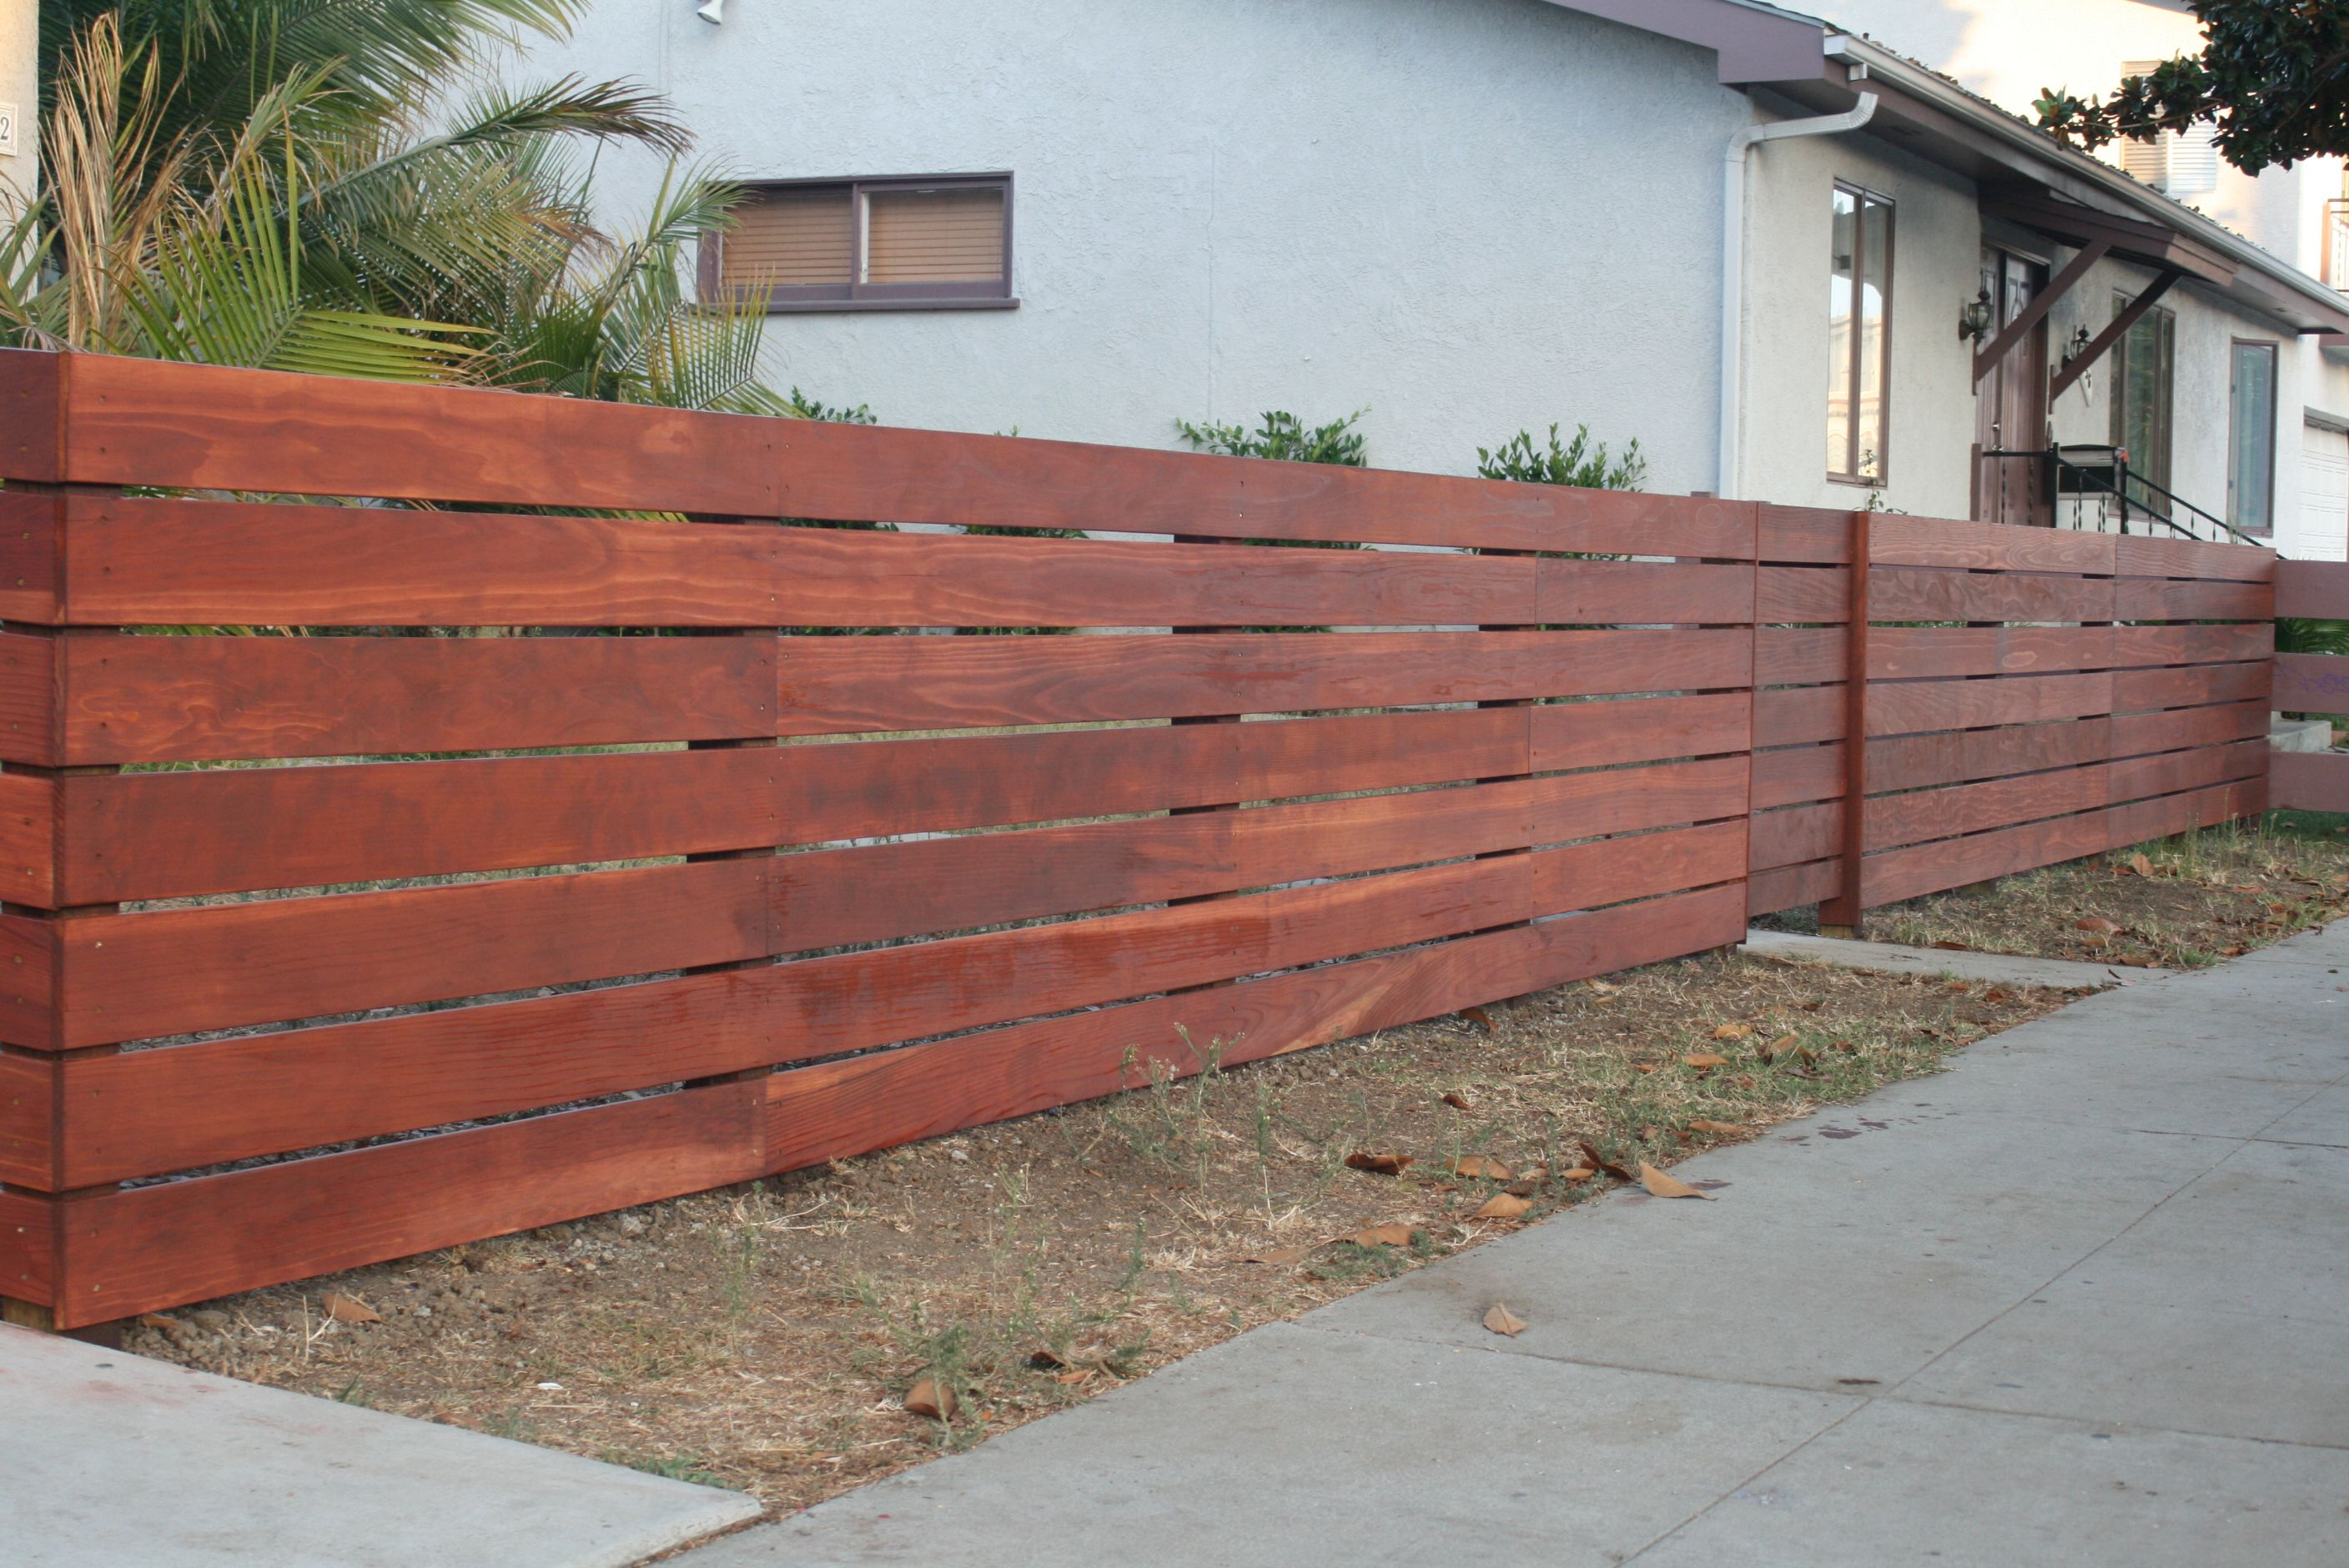 My New Fence Idea Going To Do This Fence Sharp Cloture Palette Cloture Horizontale Et Claustra Bois